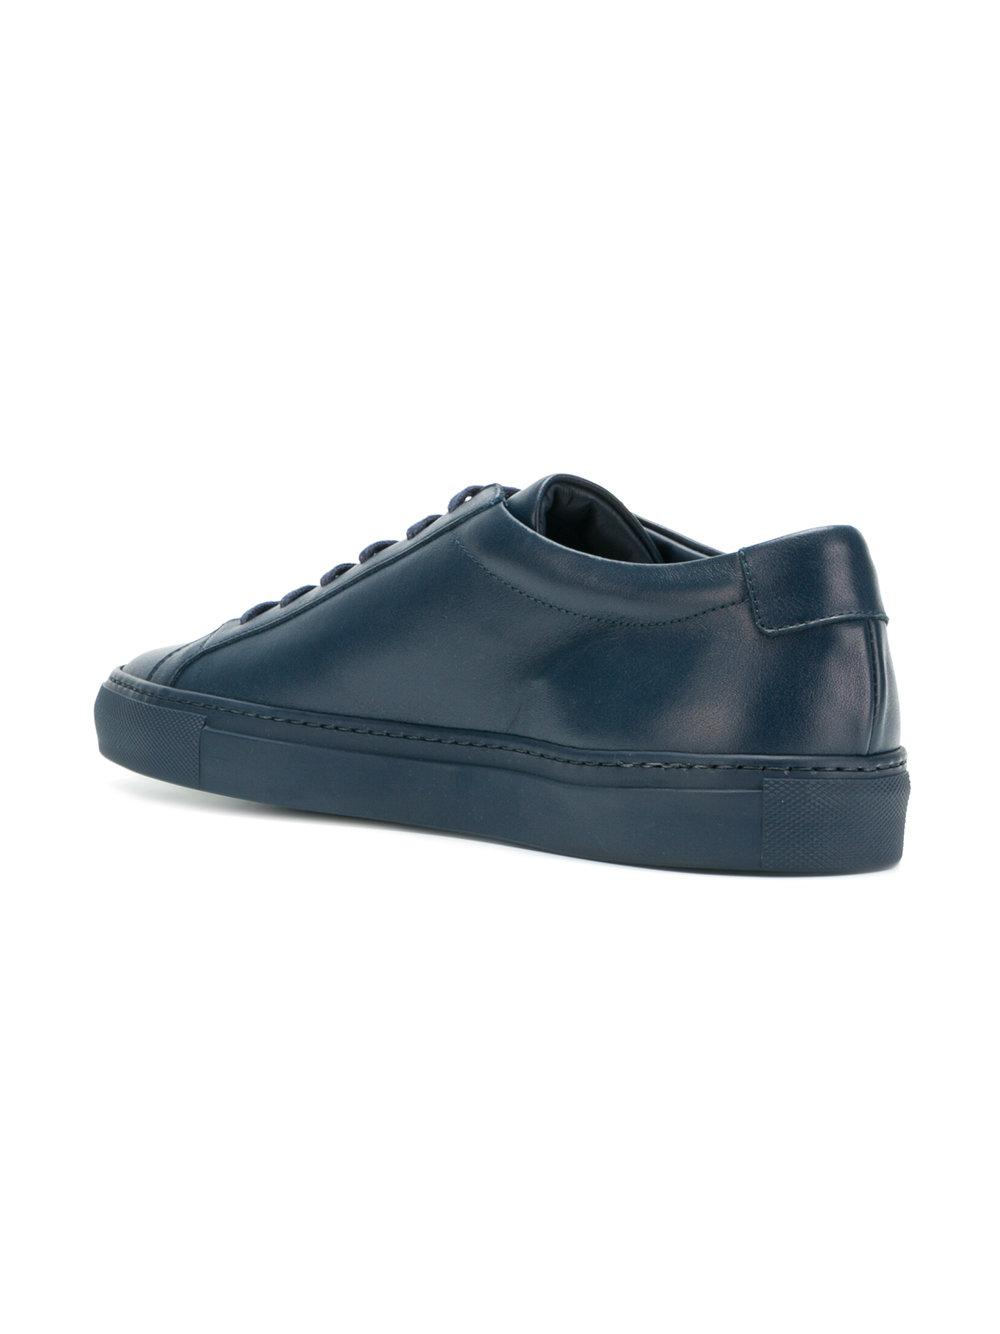 Common Projects Leather Achilles Low Top Sneakers in Blue